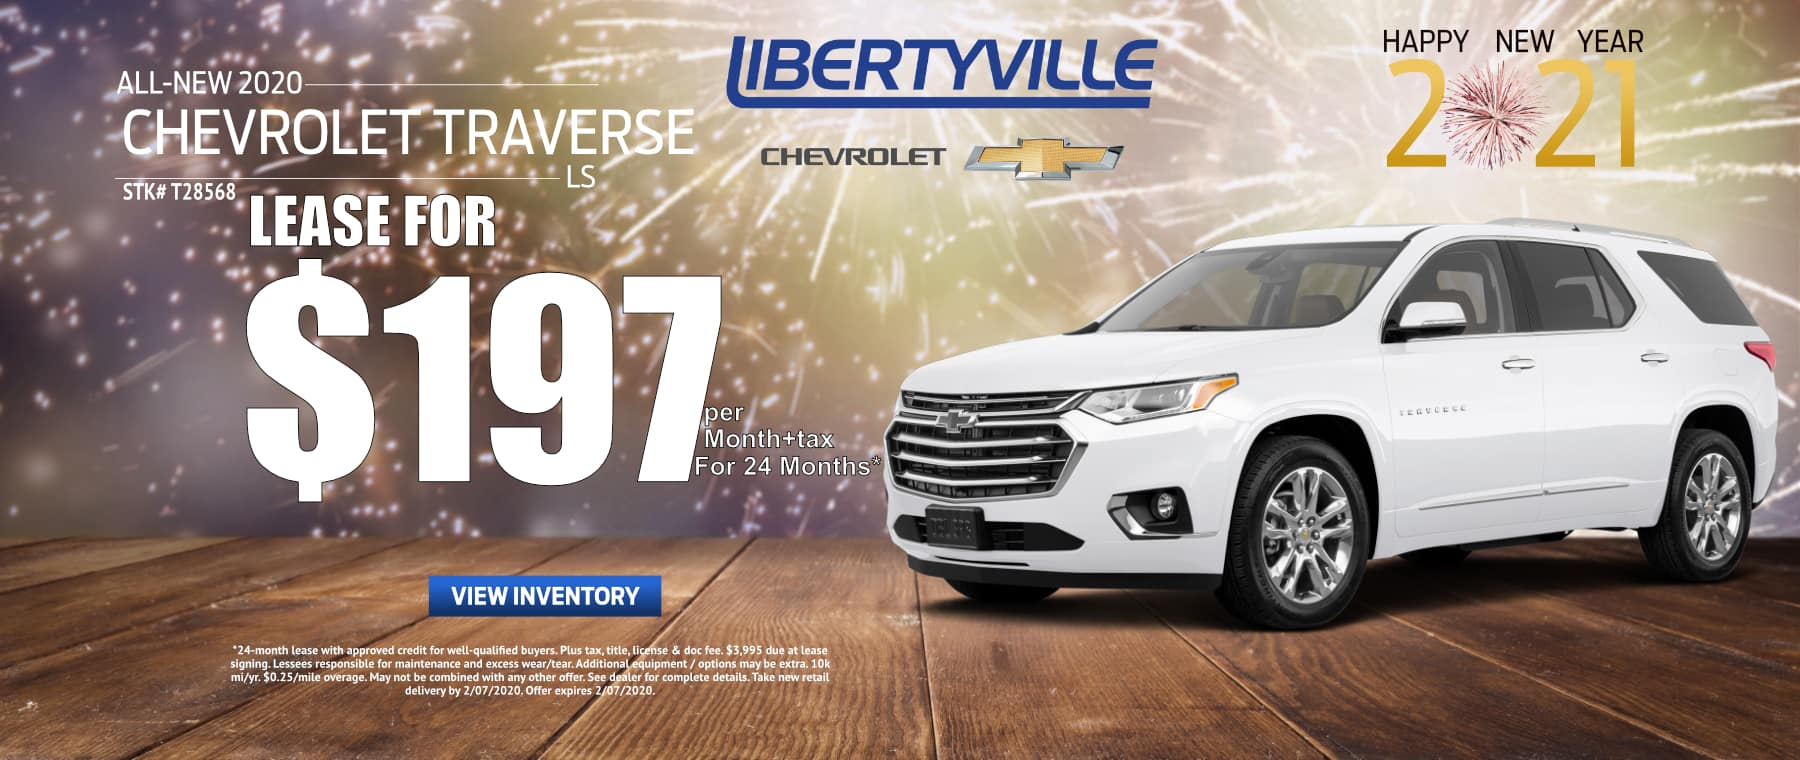 January-2021_Traverse_LS_Lease_Libertyville